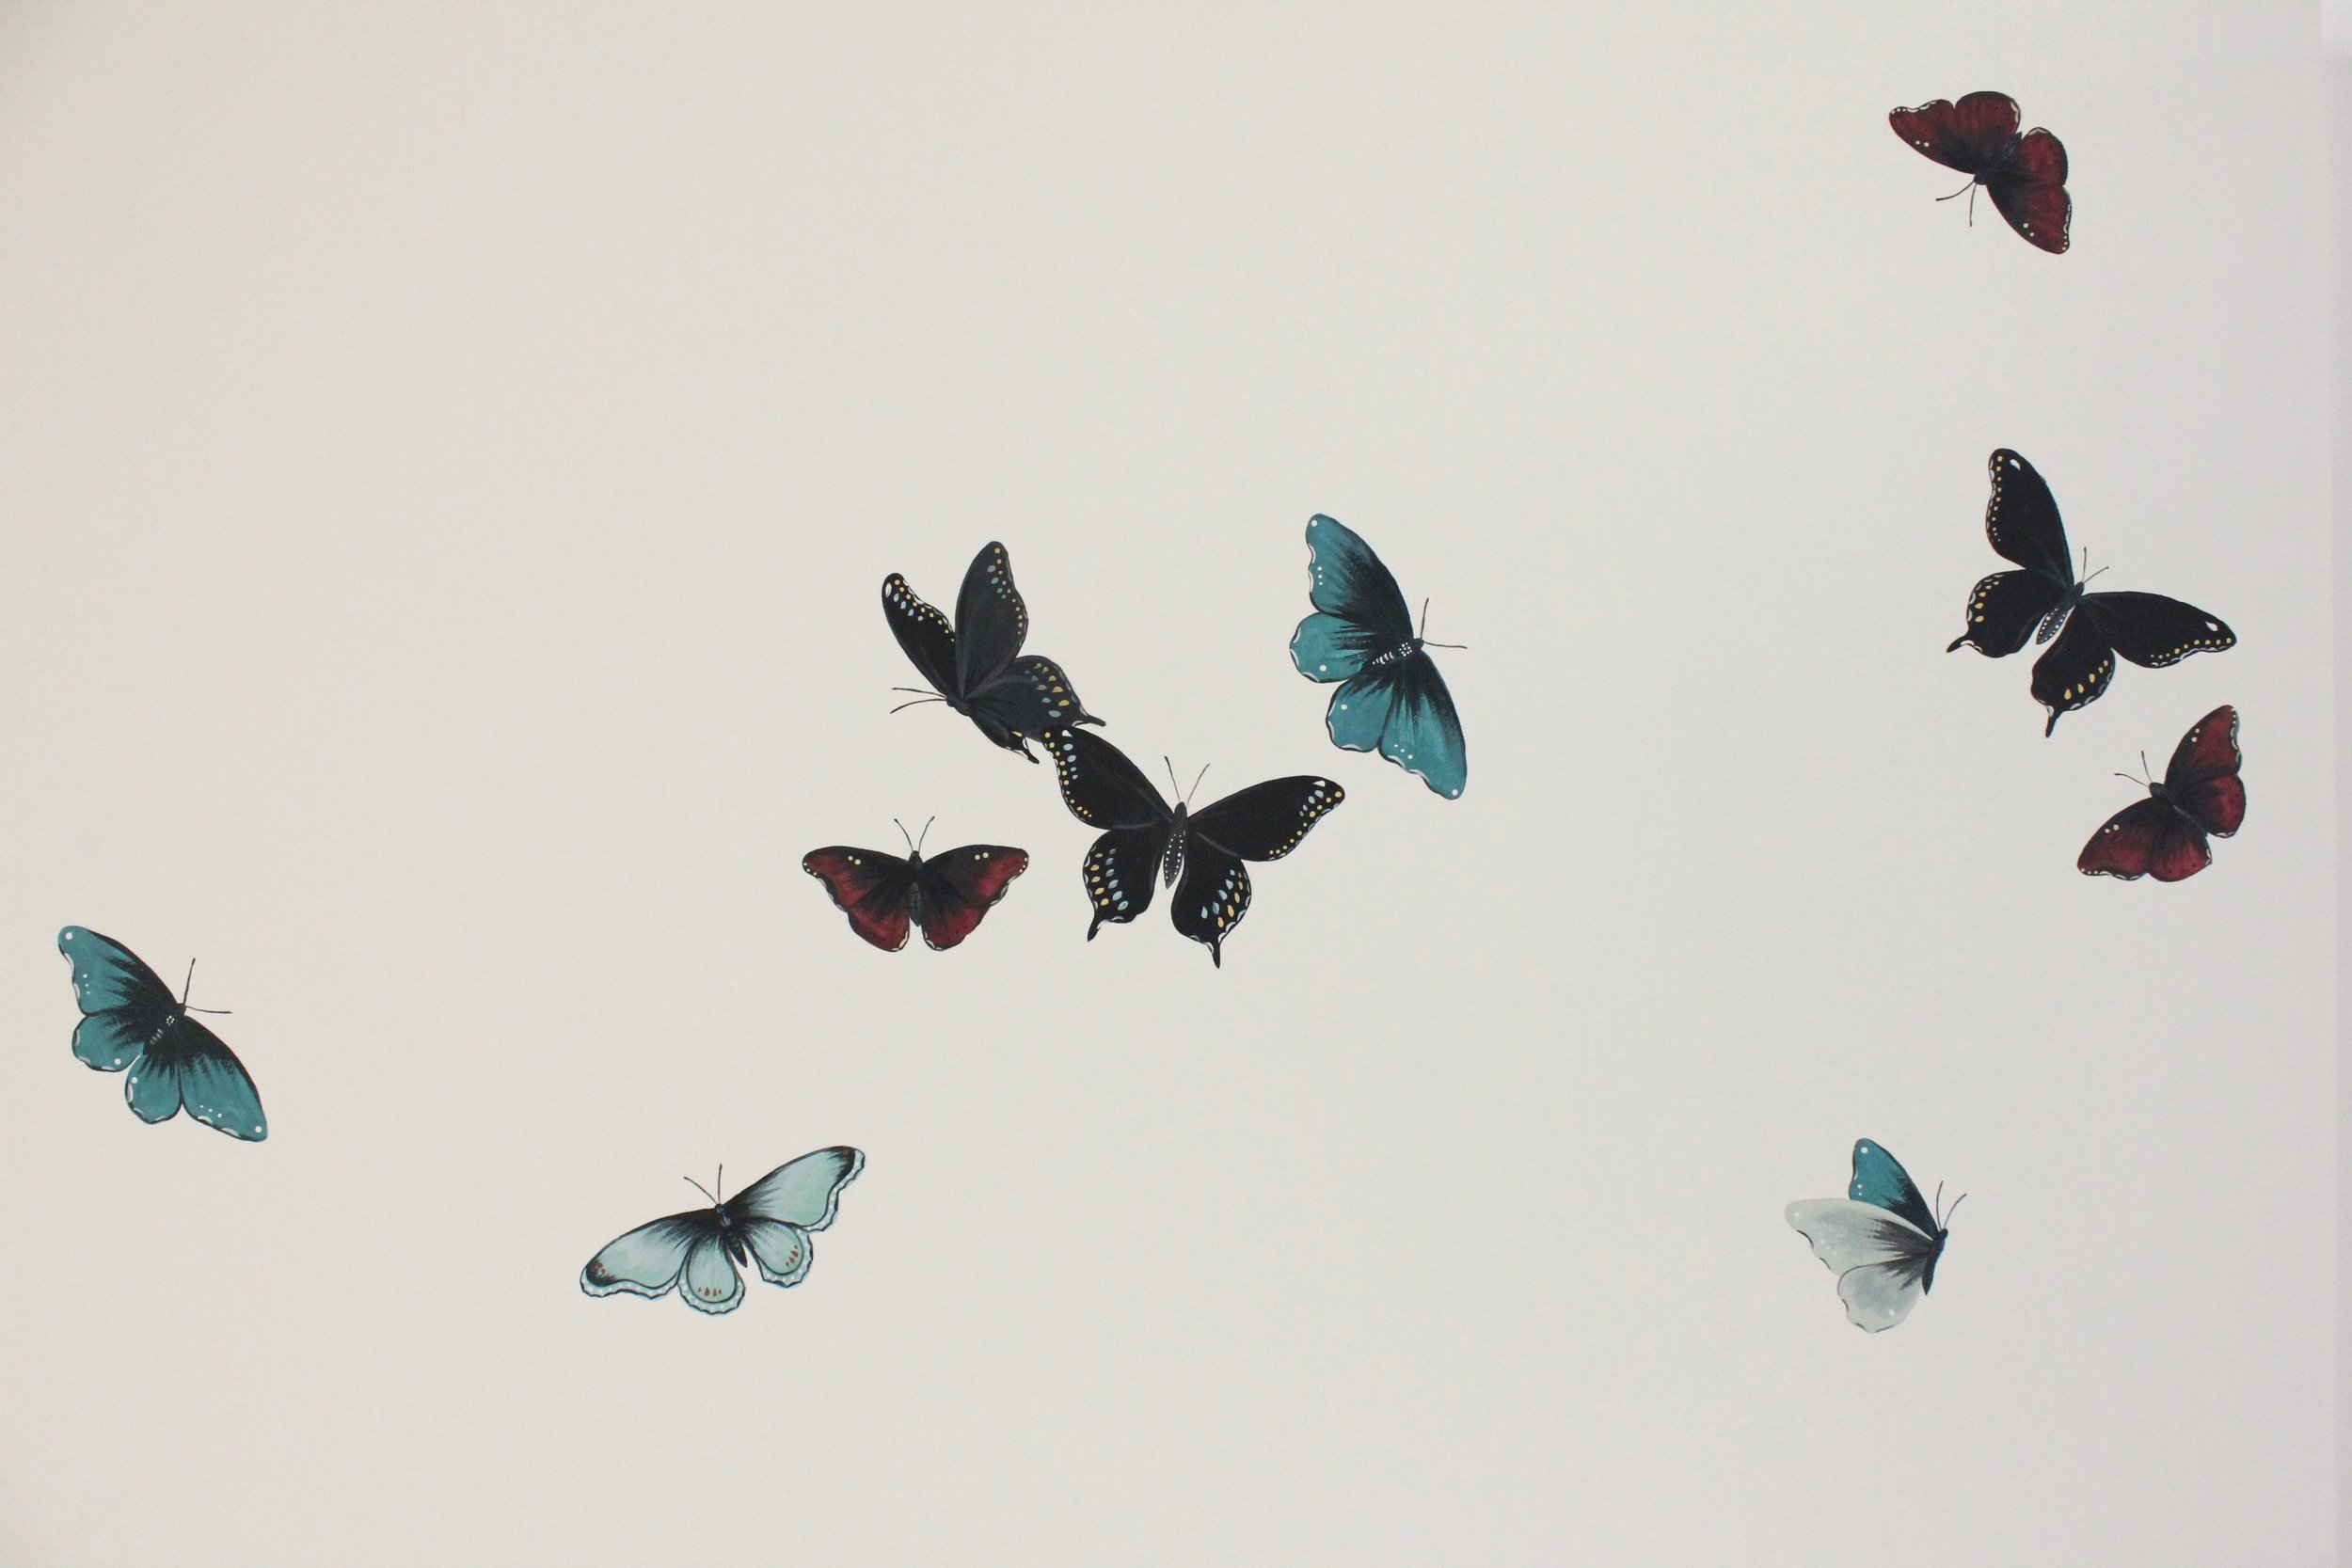 butterfly mural wallpaper.jpg